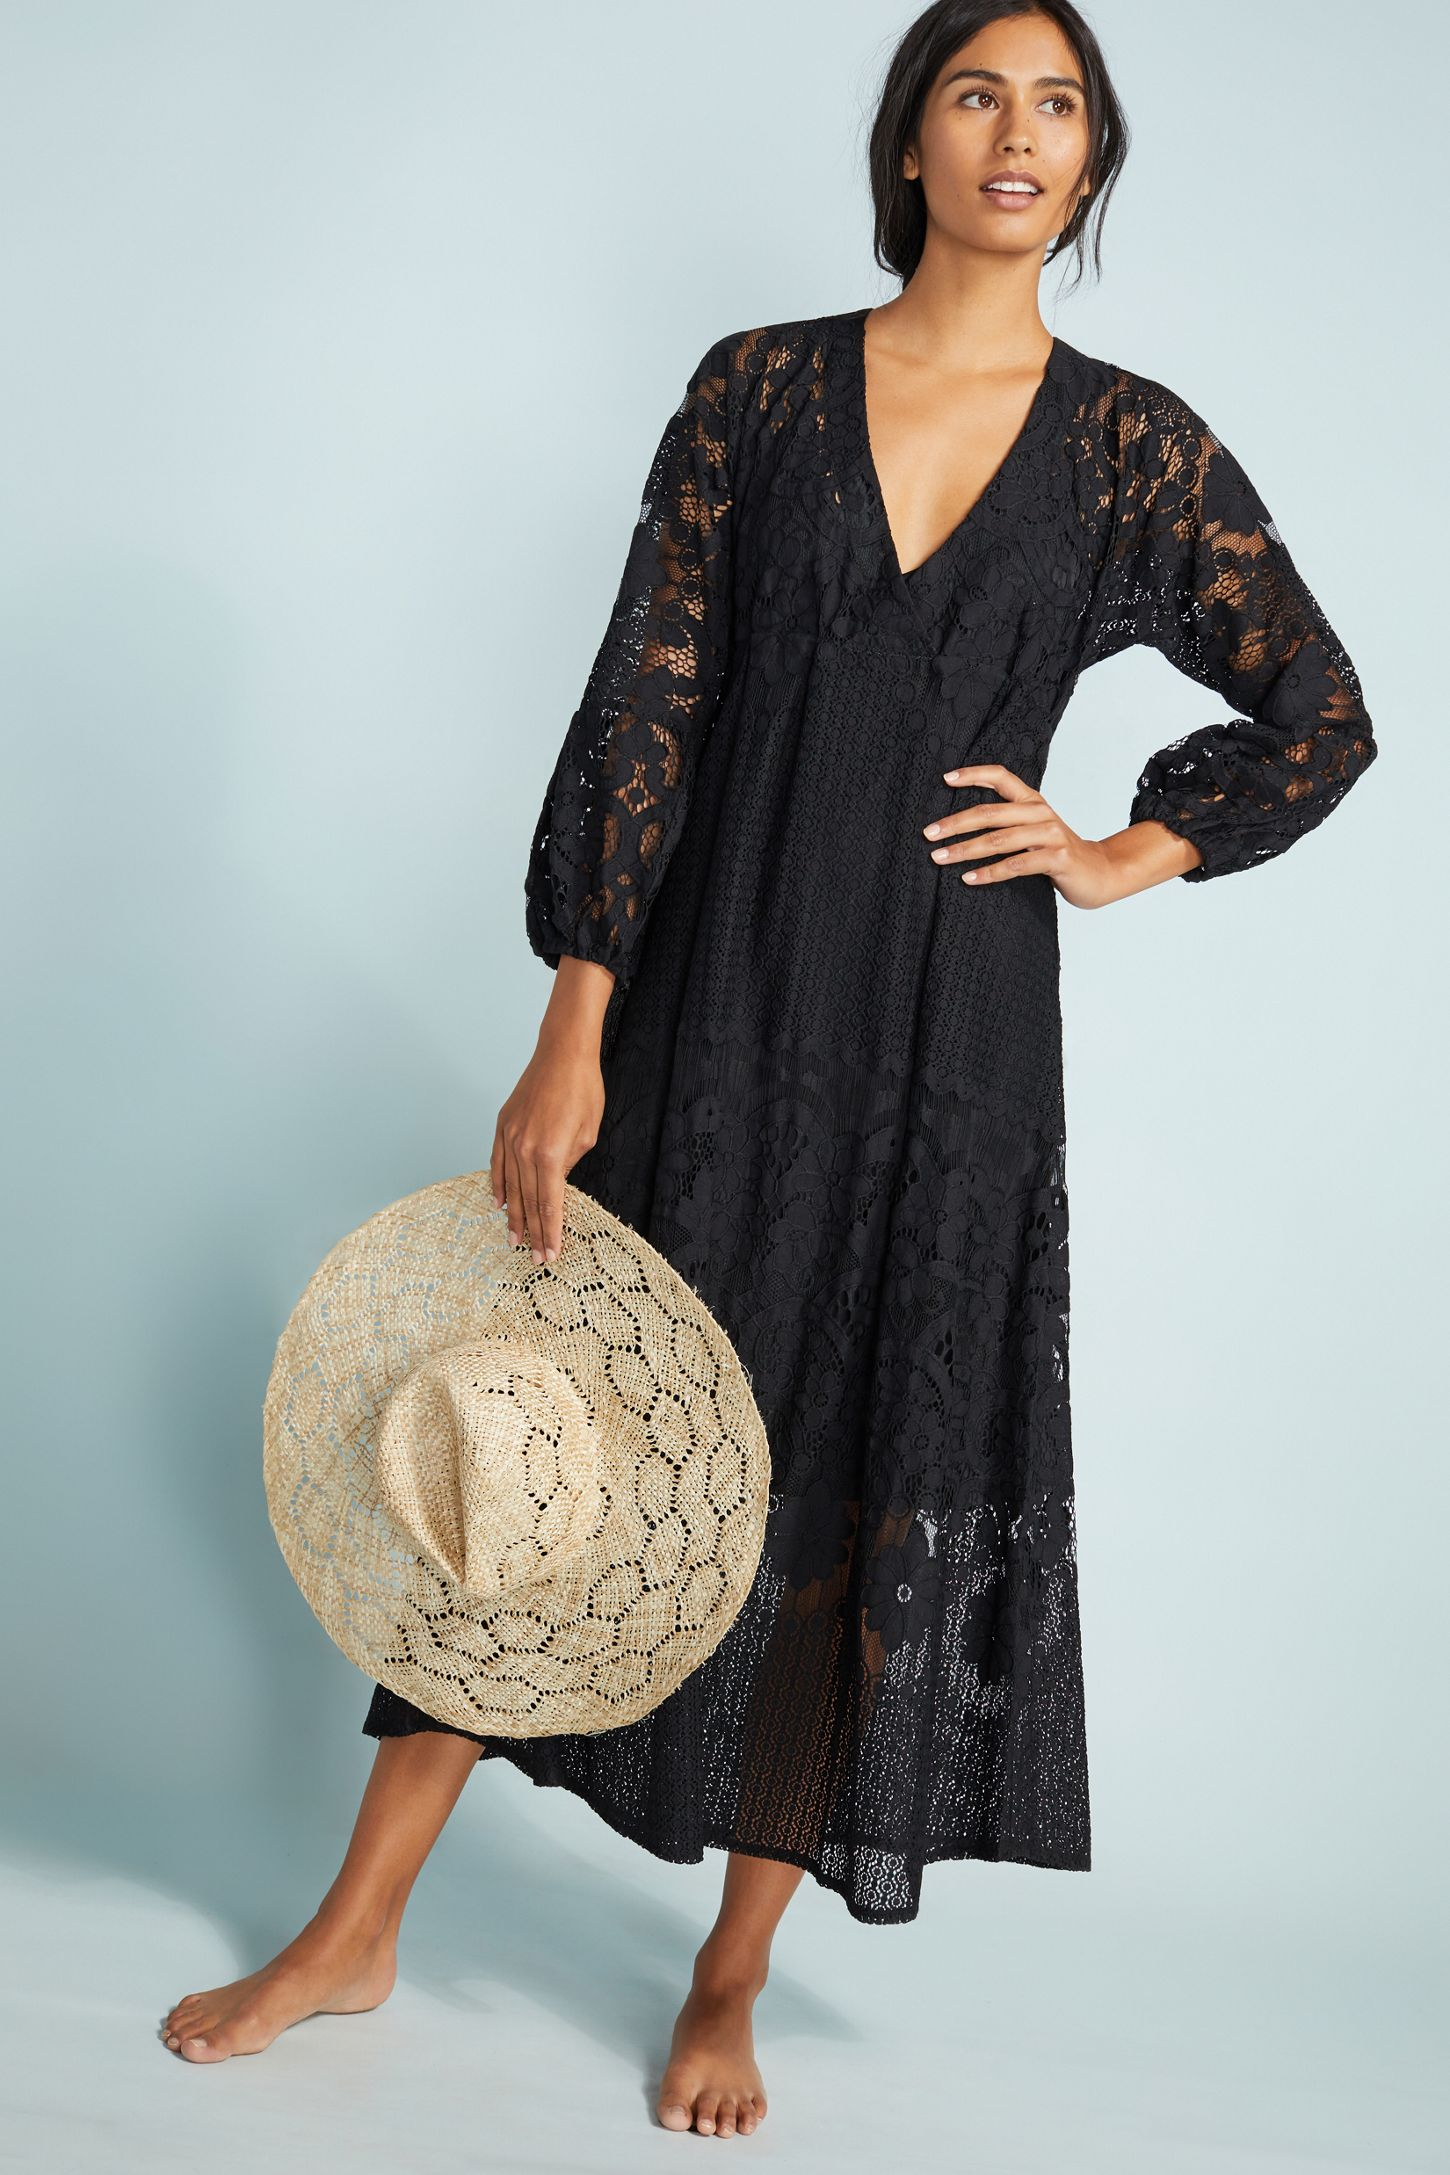 9cd2500a6148a Melissa Odabash Melissa Lace Cover-Up Dress   Anthropologie